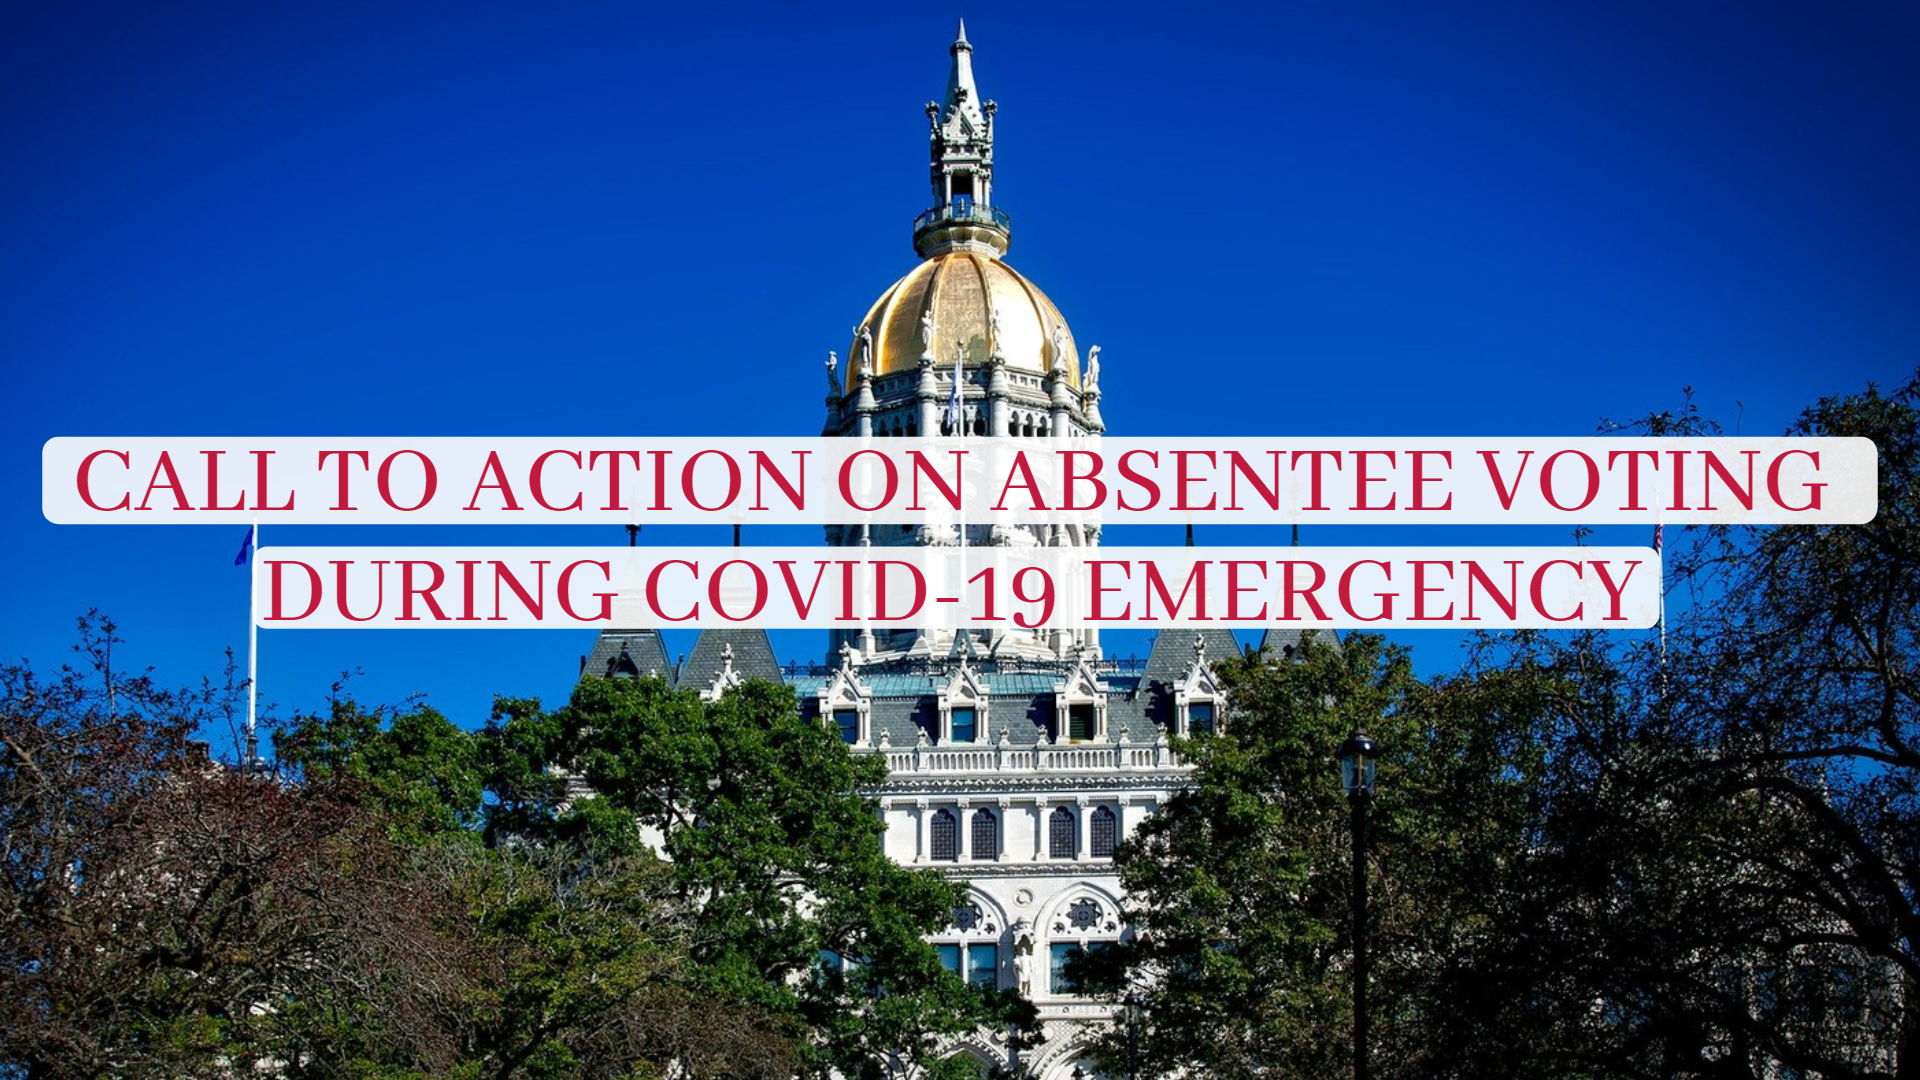 Call to Action Regarding Absentee Voting during COVID-19 Emergency